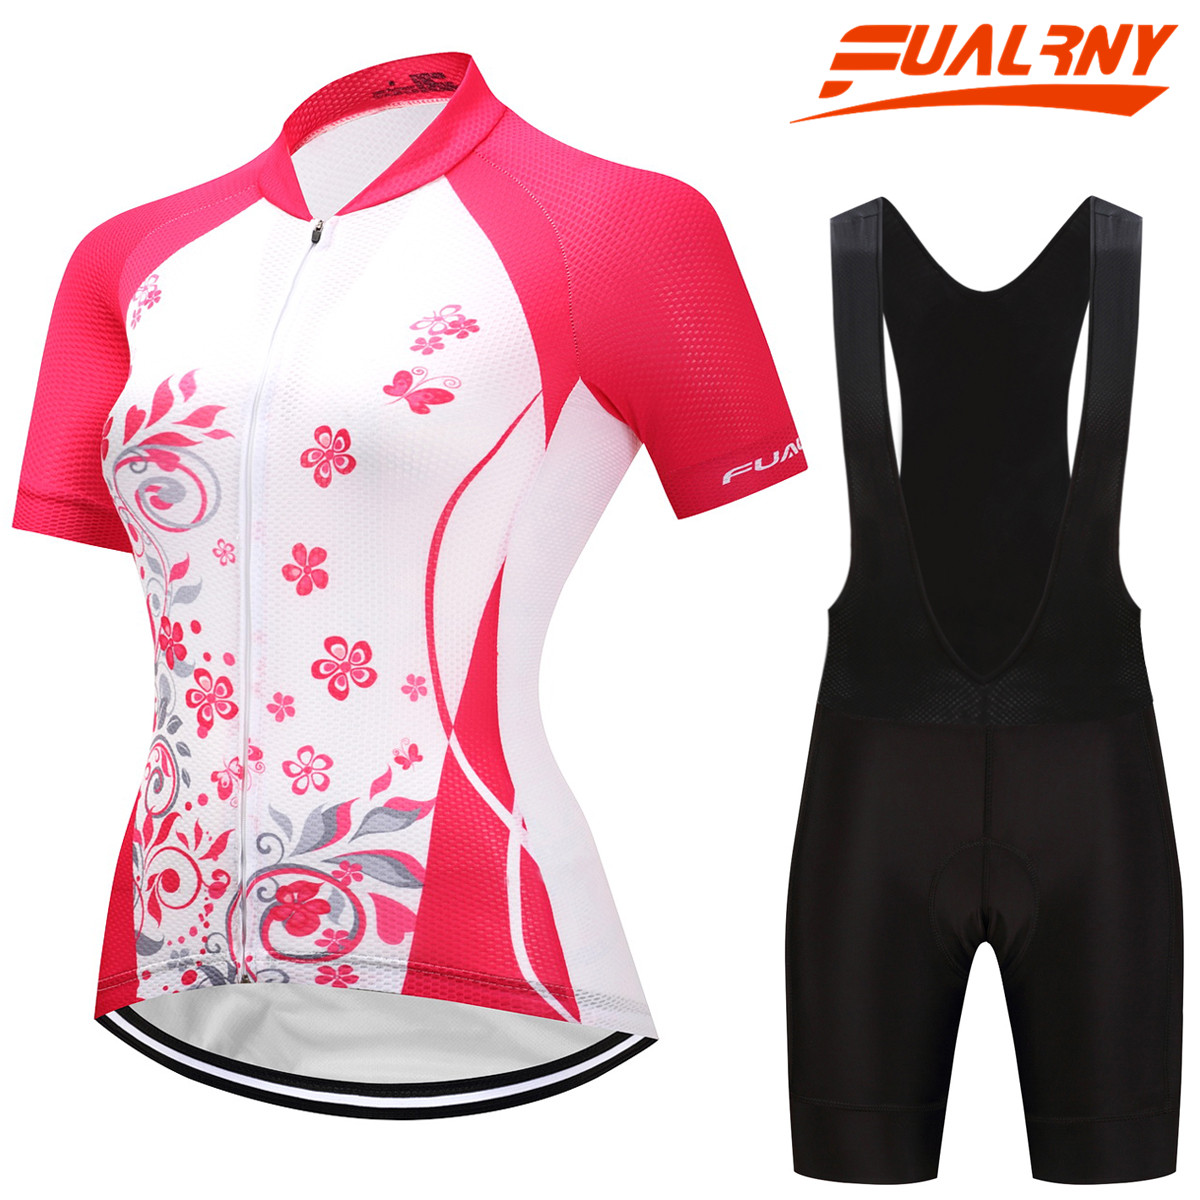 FUALRNY Women Bike Shirt 100% Polyester Breathable Bicycle Clothes Summer UV Cycling Jer ...